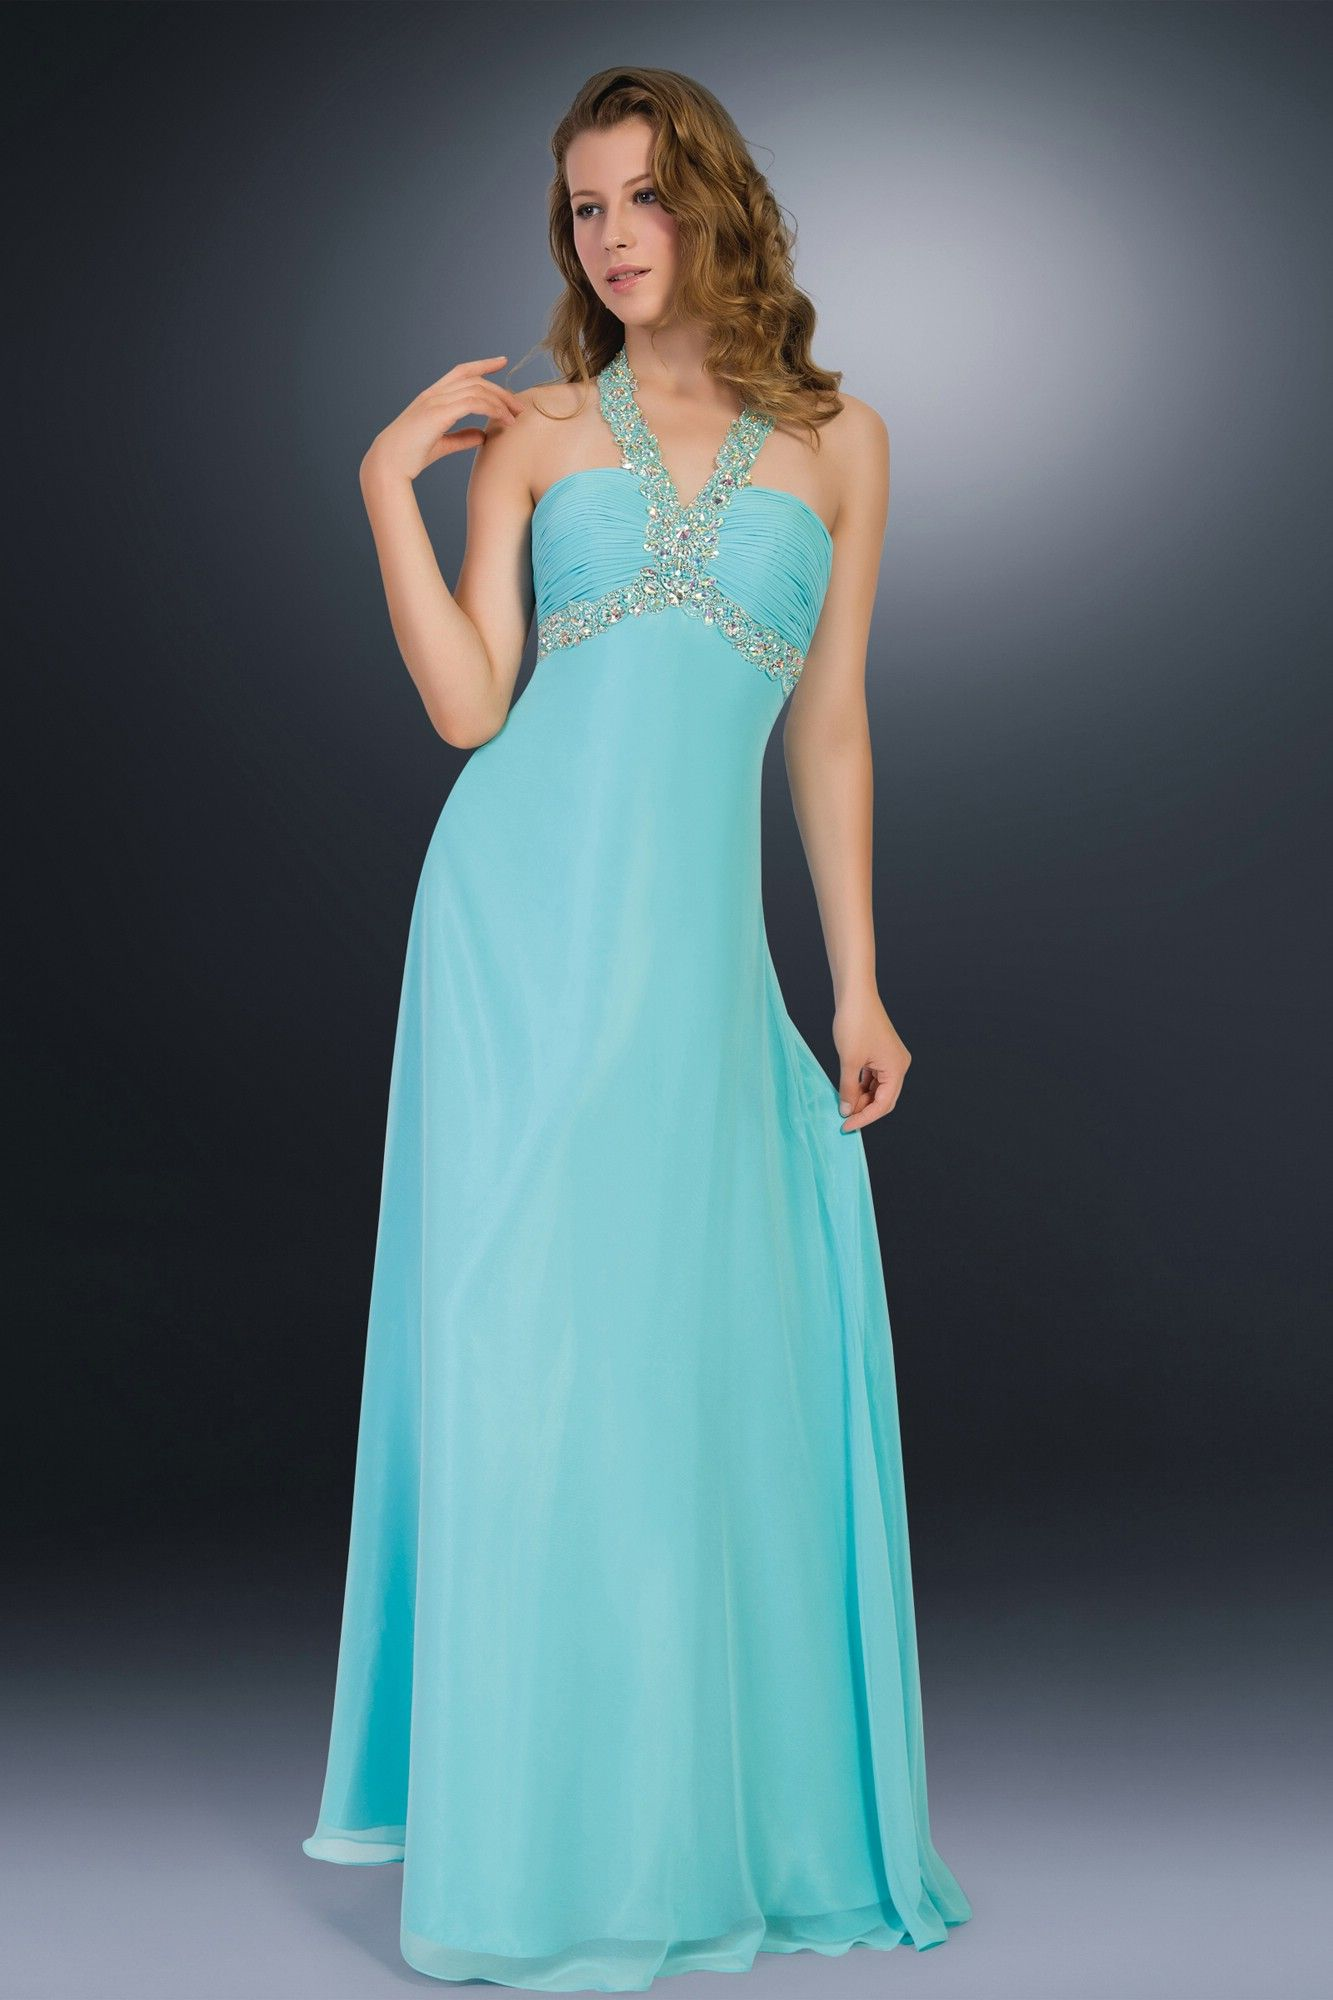 2Cute 2014 Prom Dress Style 1470 | Clothes | Pinterest | Prom and ...